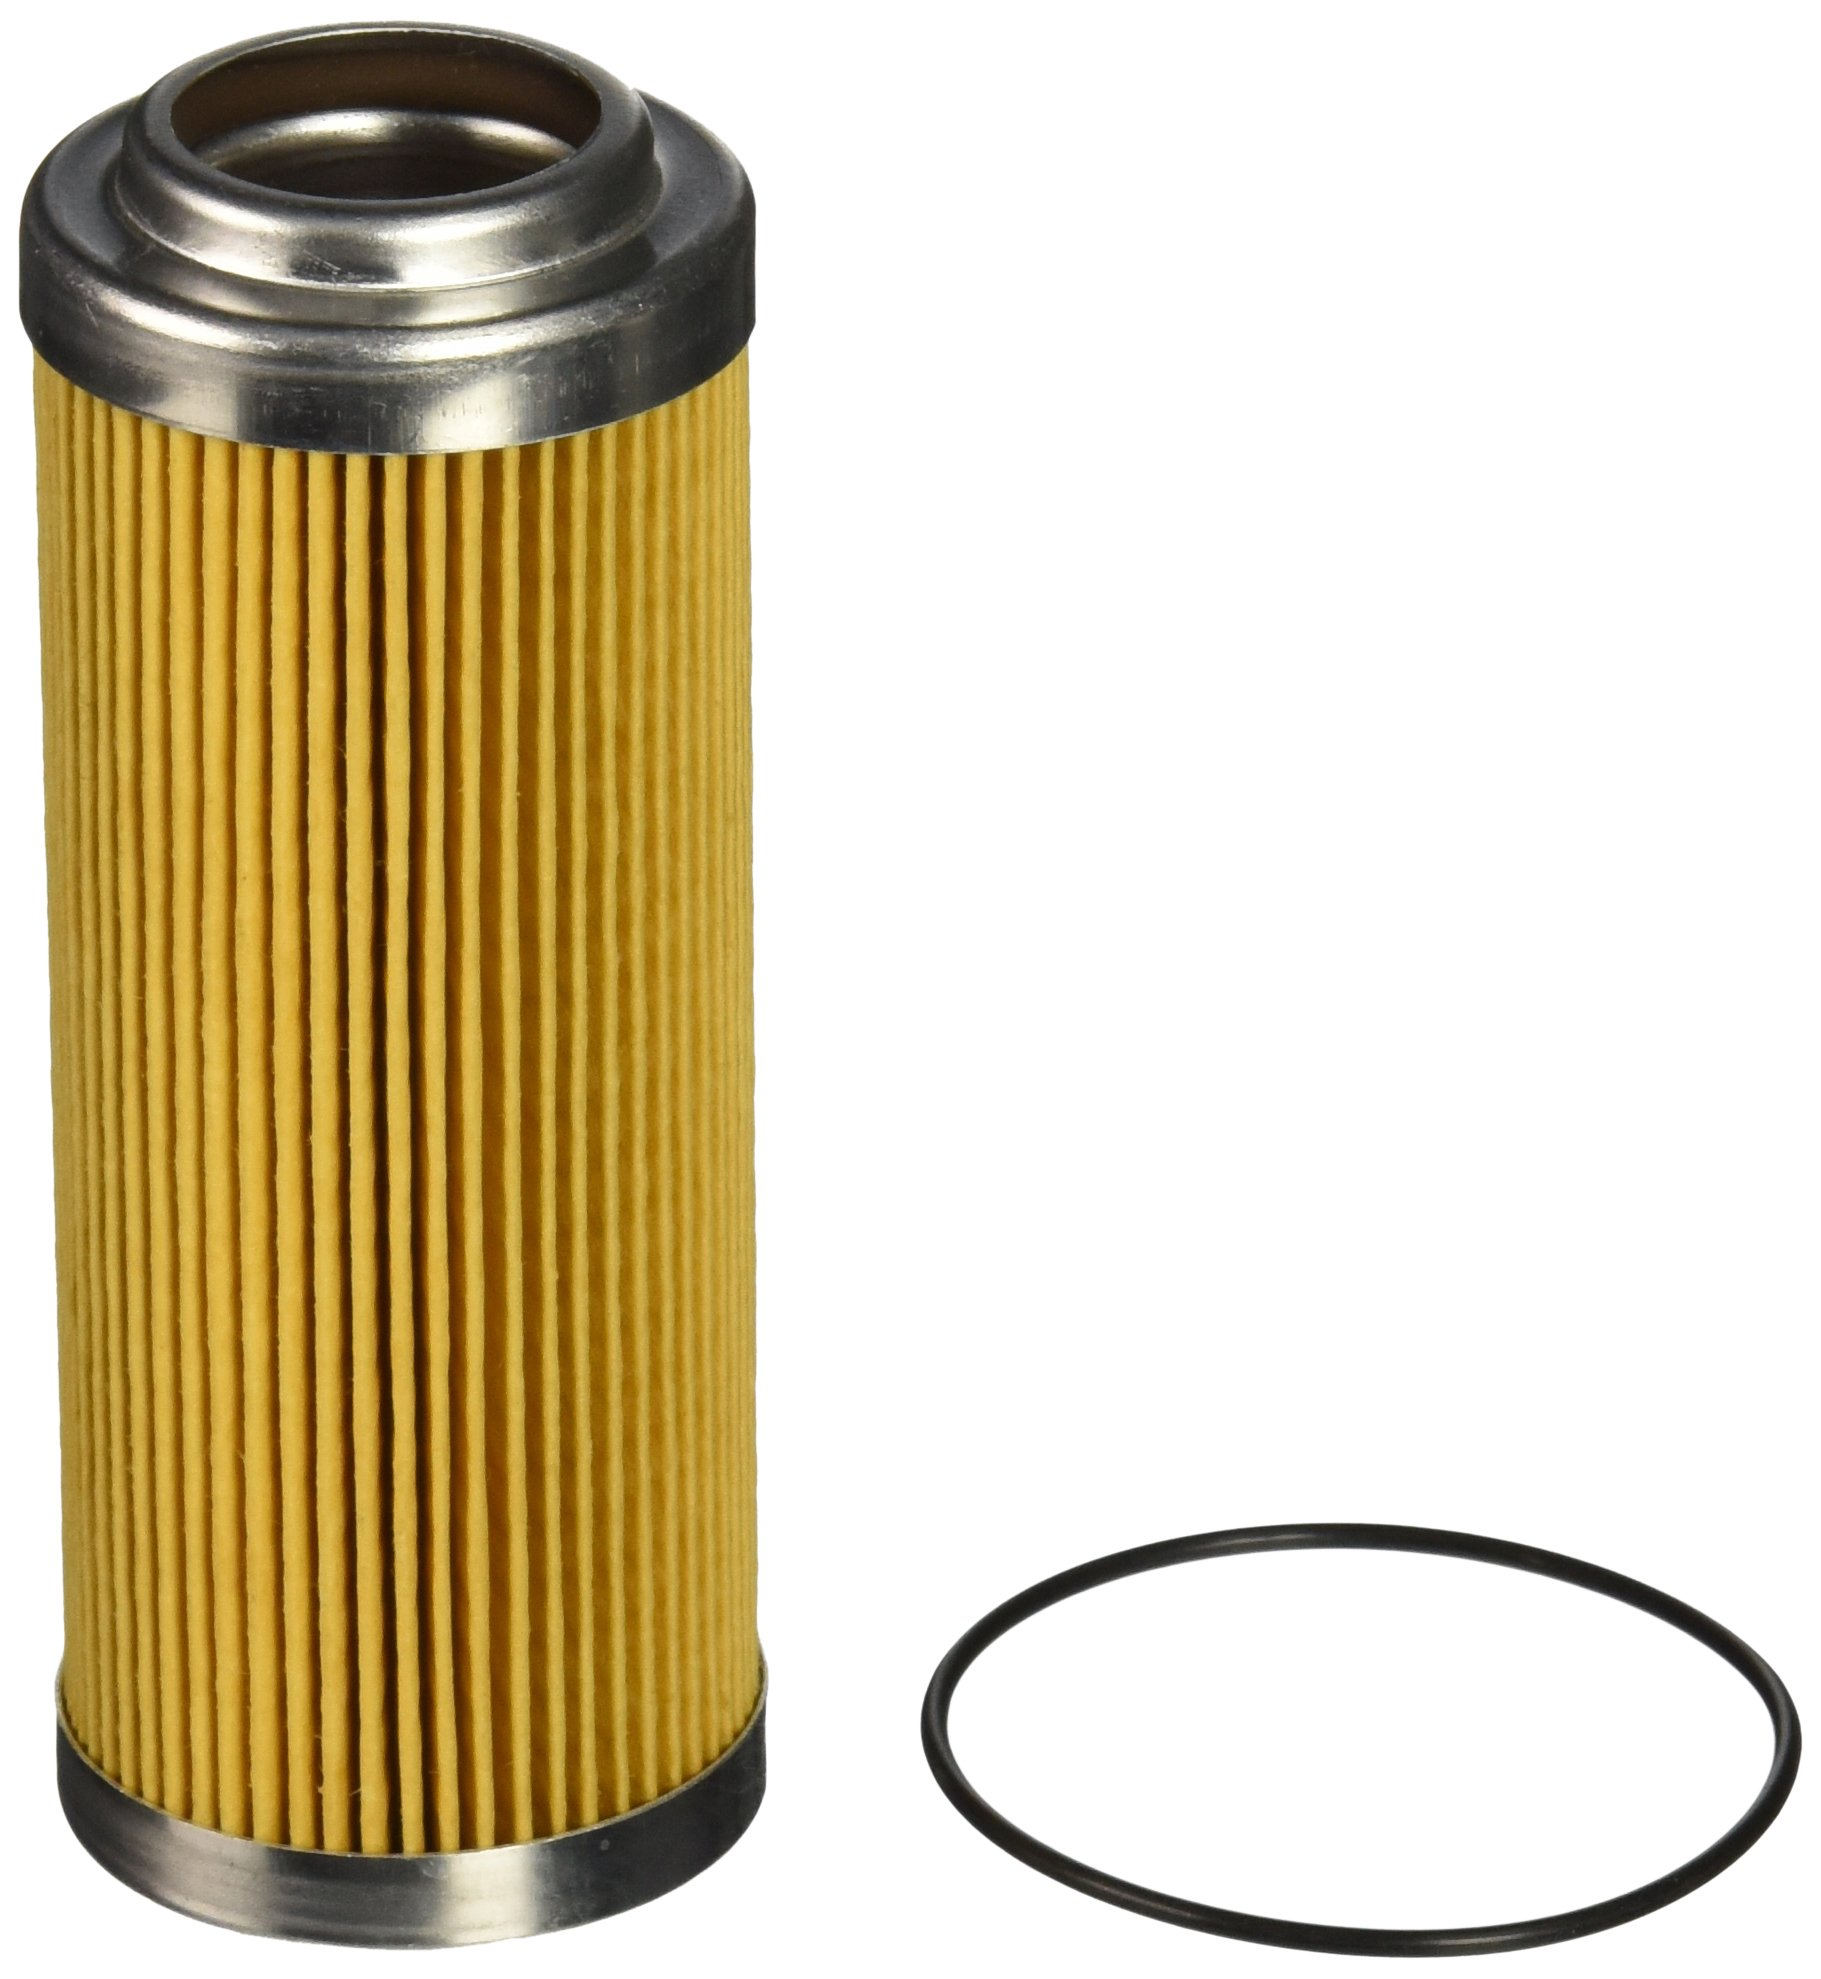 Buy Aeromotive 12308 Canister Style Fuel Filter In Cheap Price On Allstar 12610 Pro Series 10 Micron